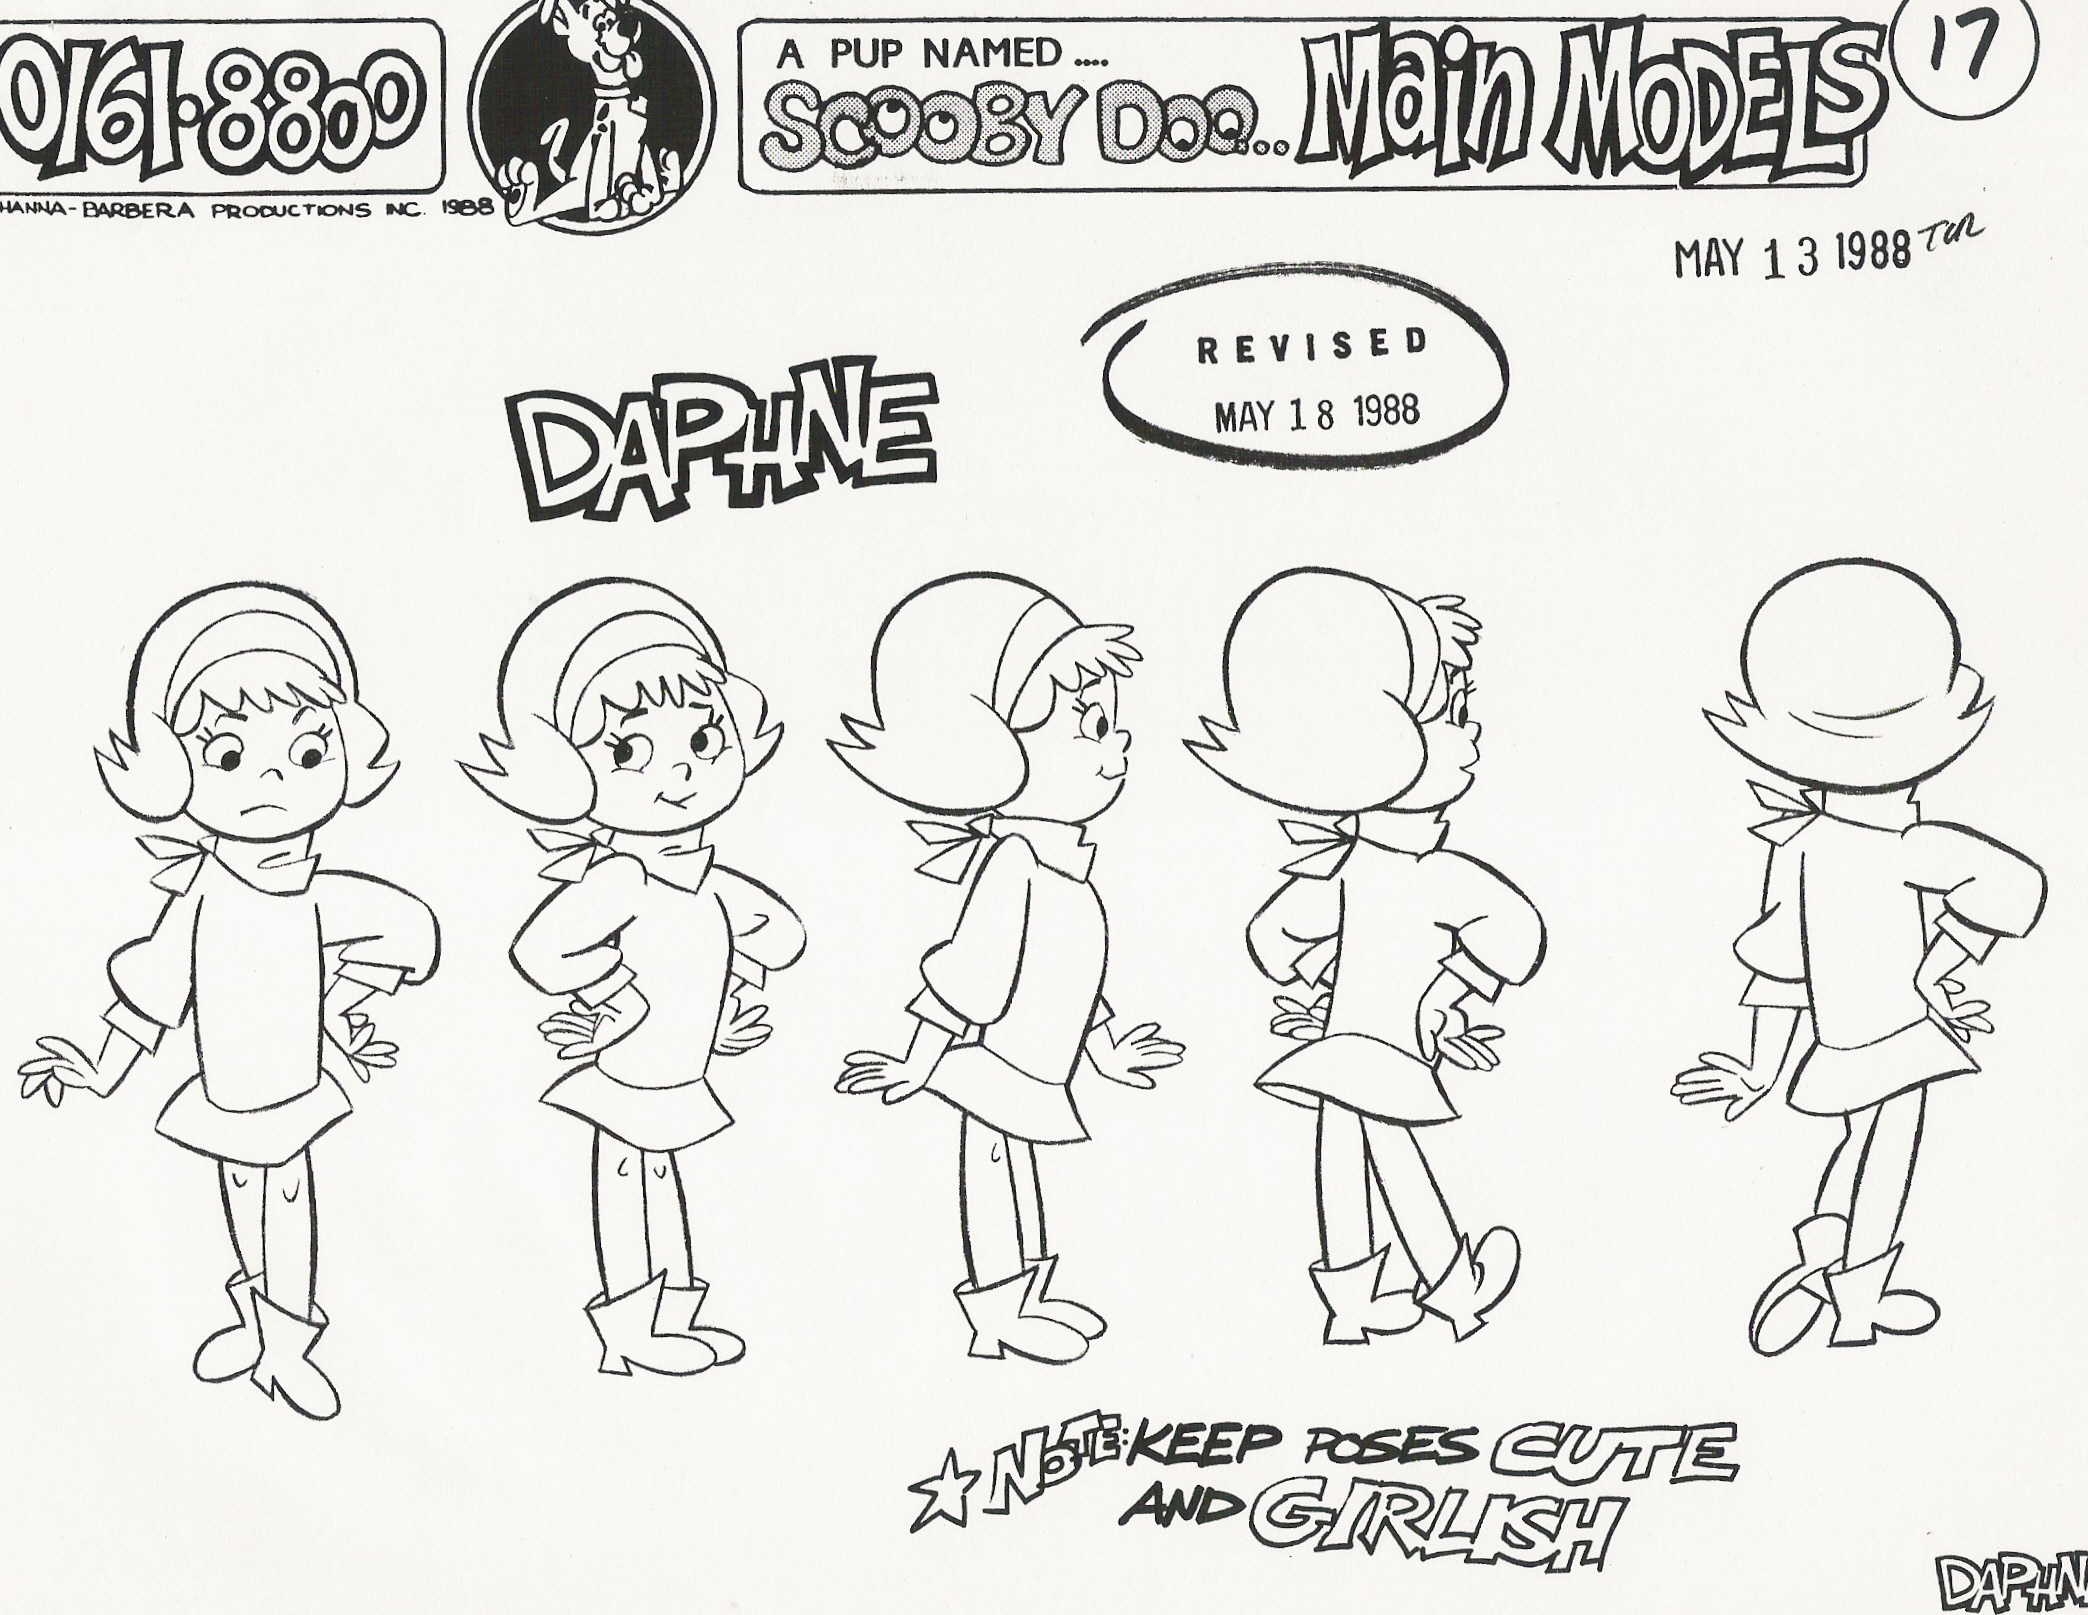 High Quality Pup Named Scooby Doo Model Sheets Scooby